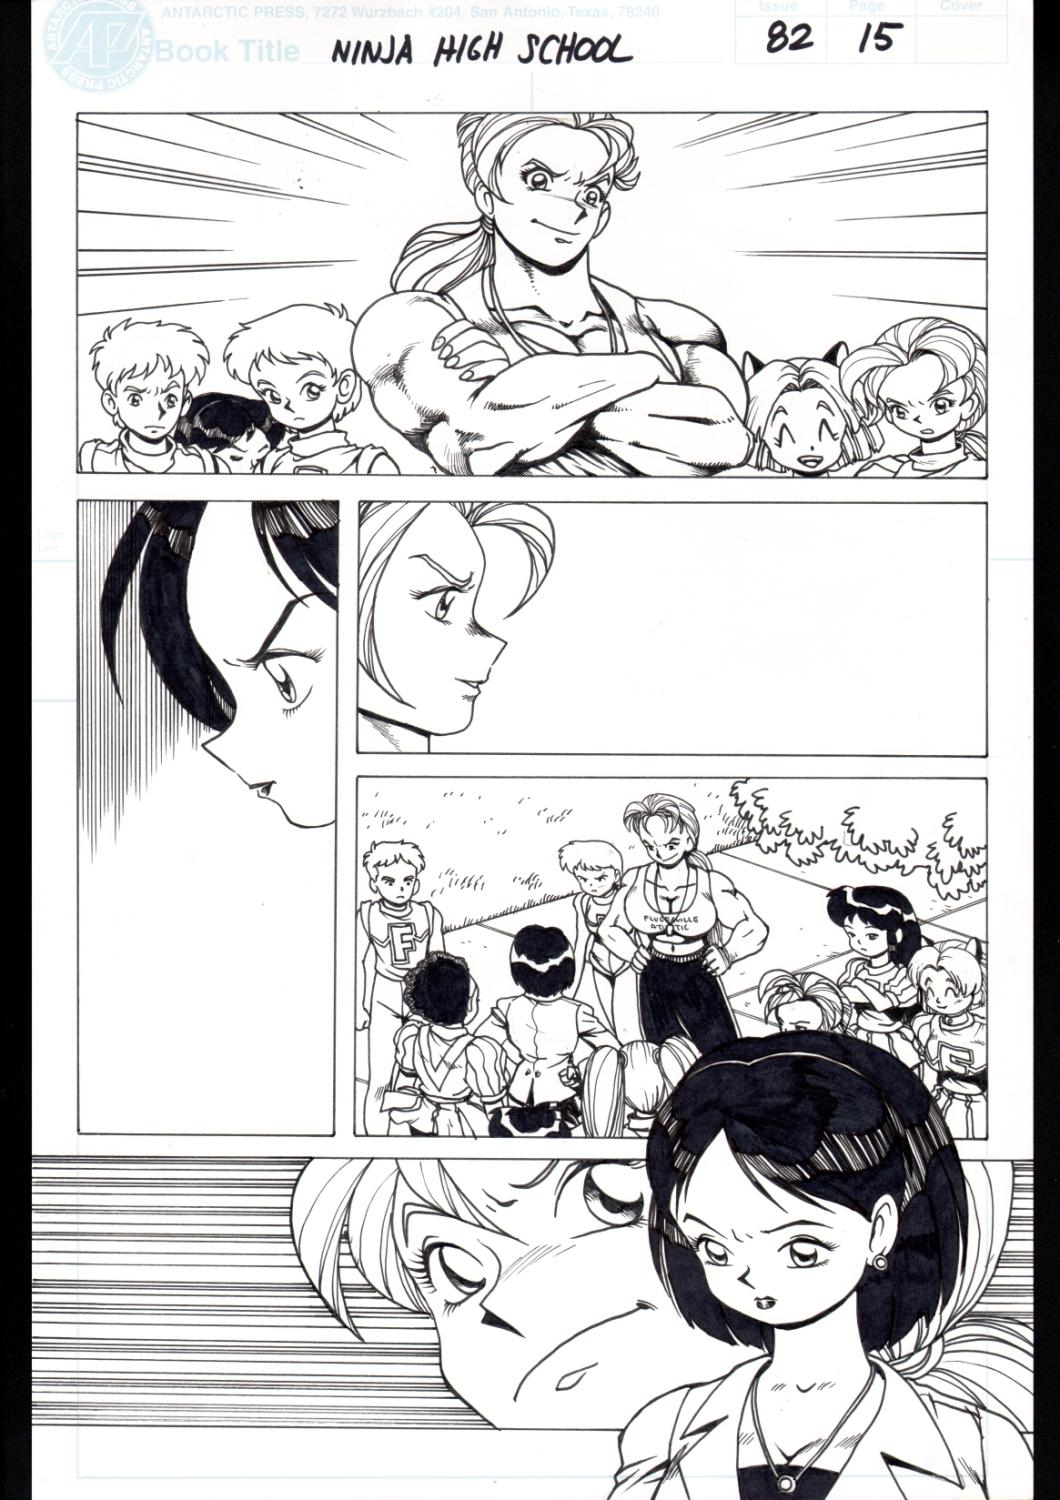 Ninja High School 82 Pg 15 Original Art Ben Dunn Anime